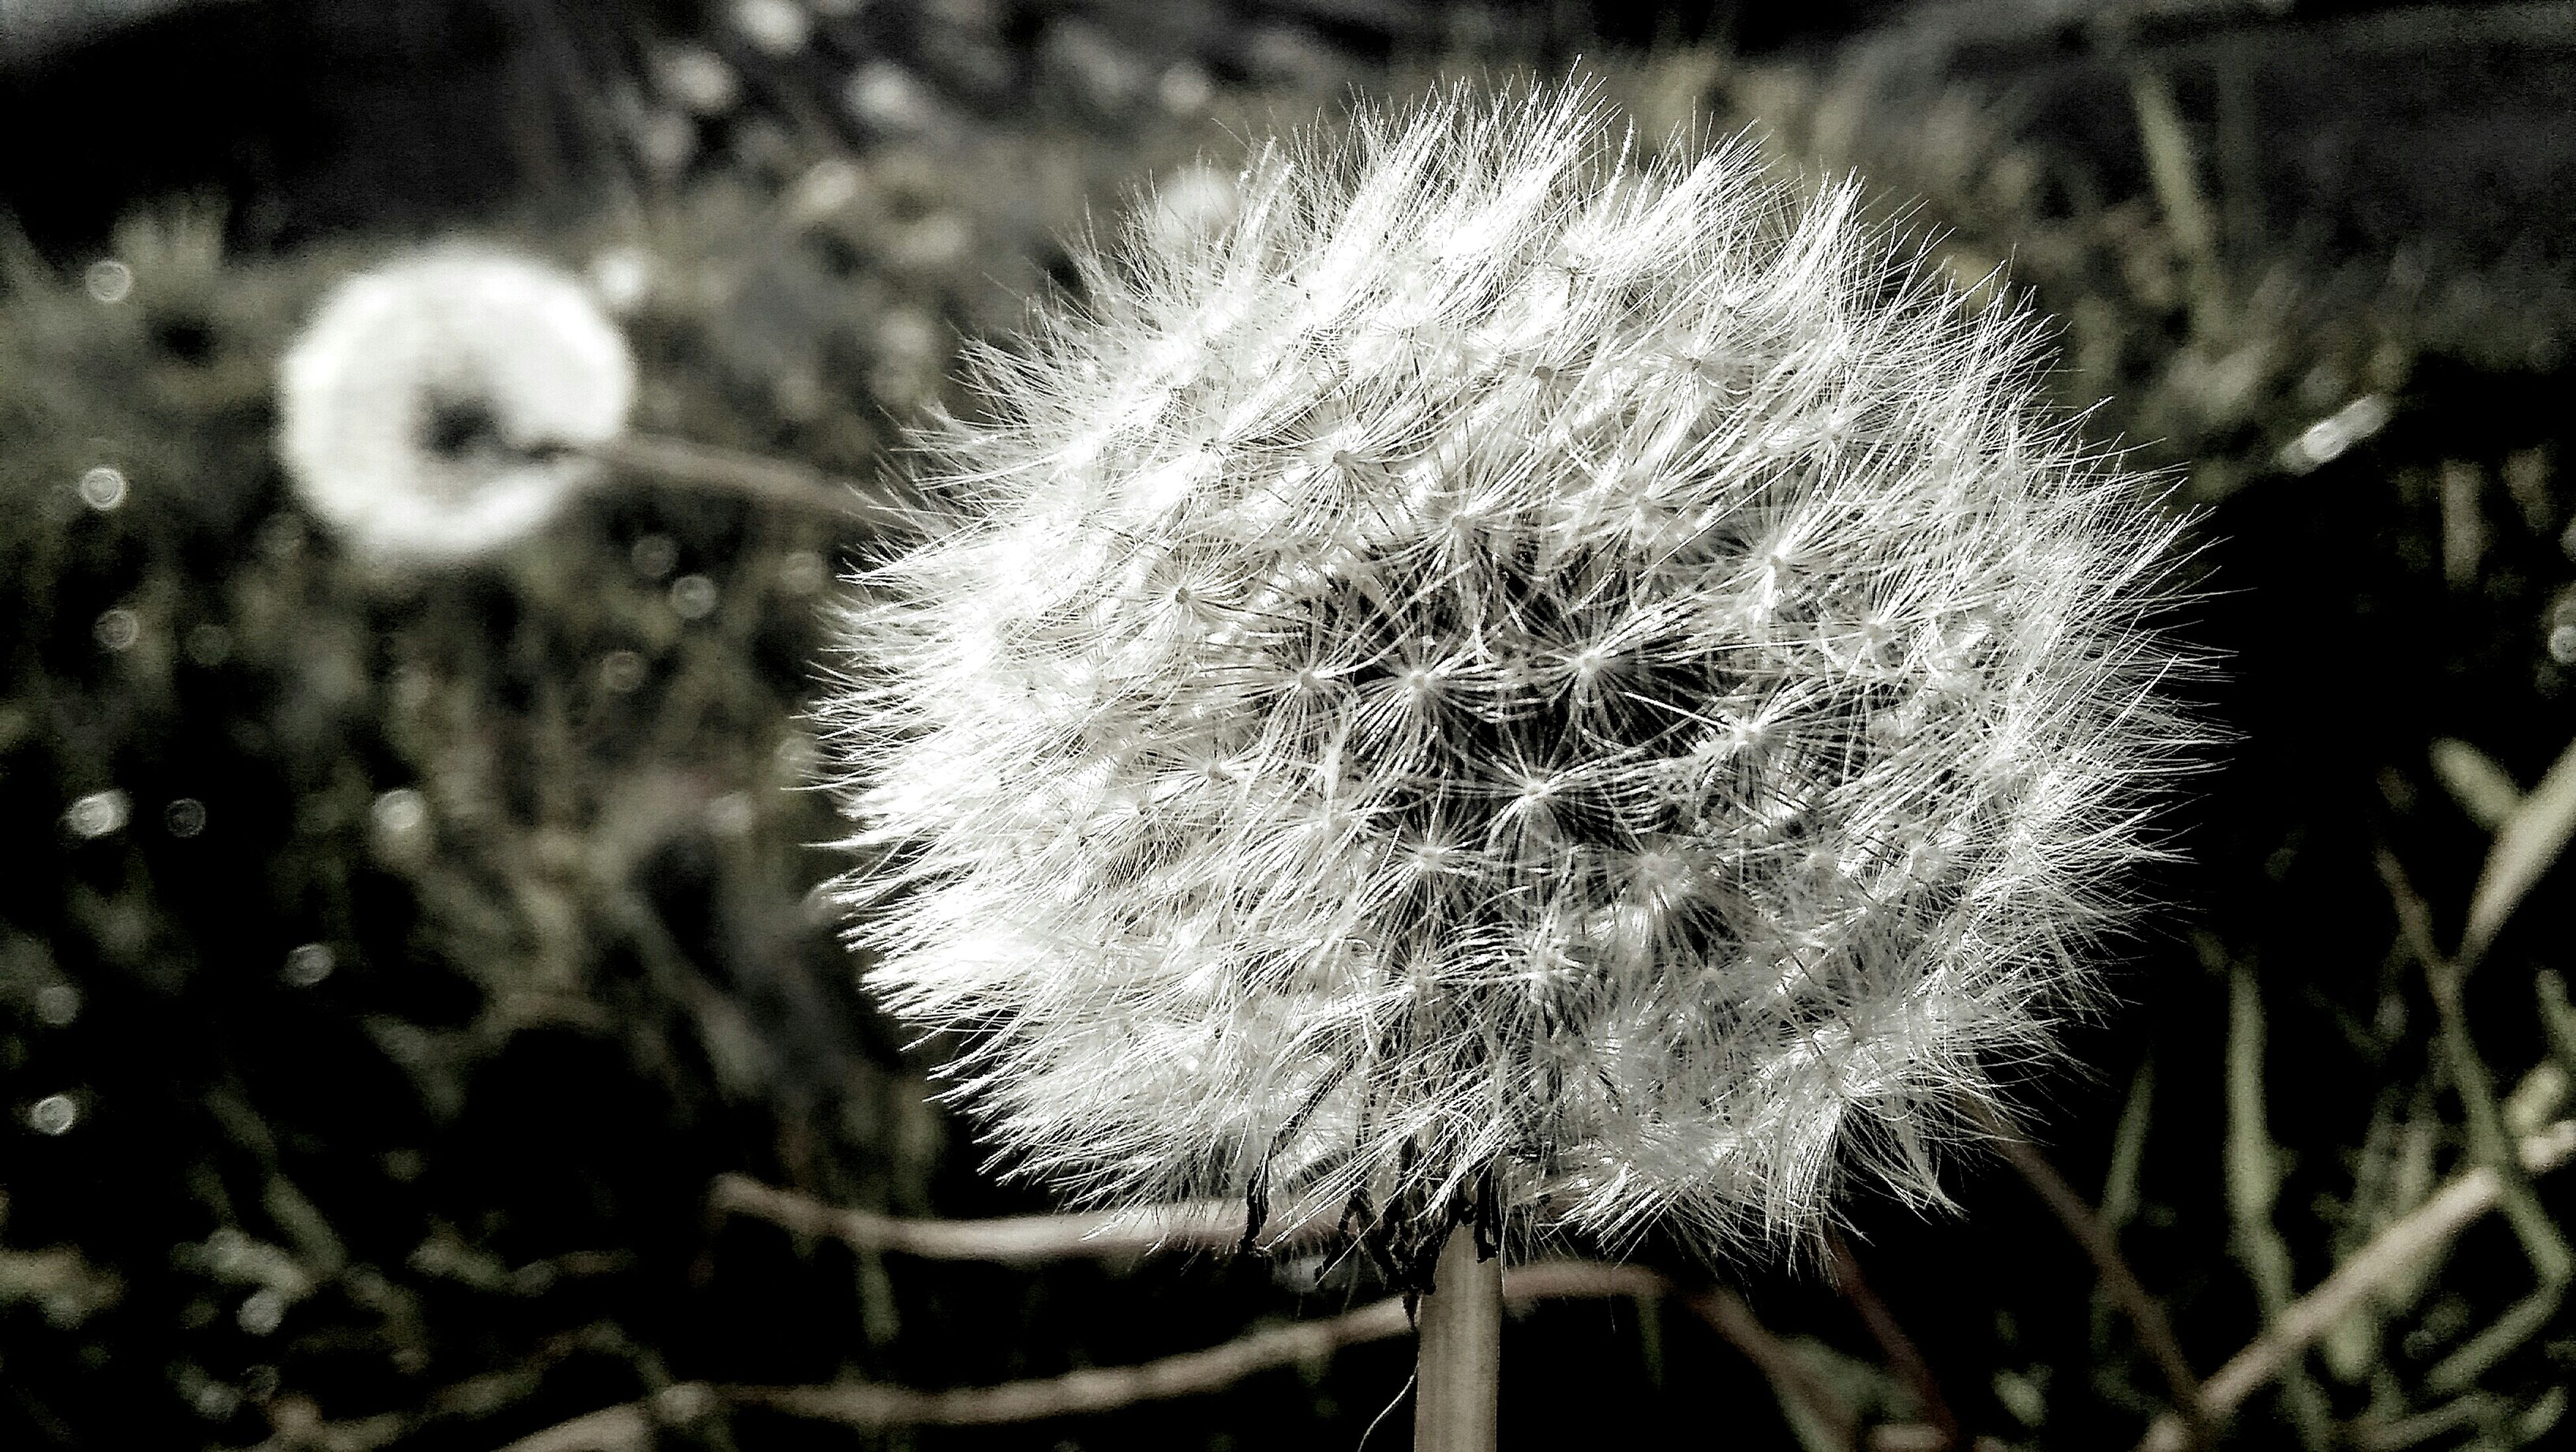 close-up, cold temperature, winter, dandelion, focus on foreground, fragility, snow, frozen, flower, season, weather, nature, growth, beauty in nature, white color, freshness, plant, flower head, single flower, outdoors